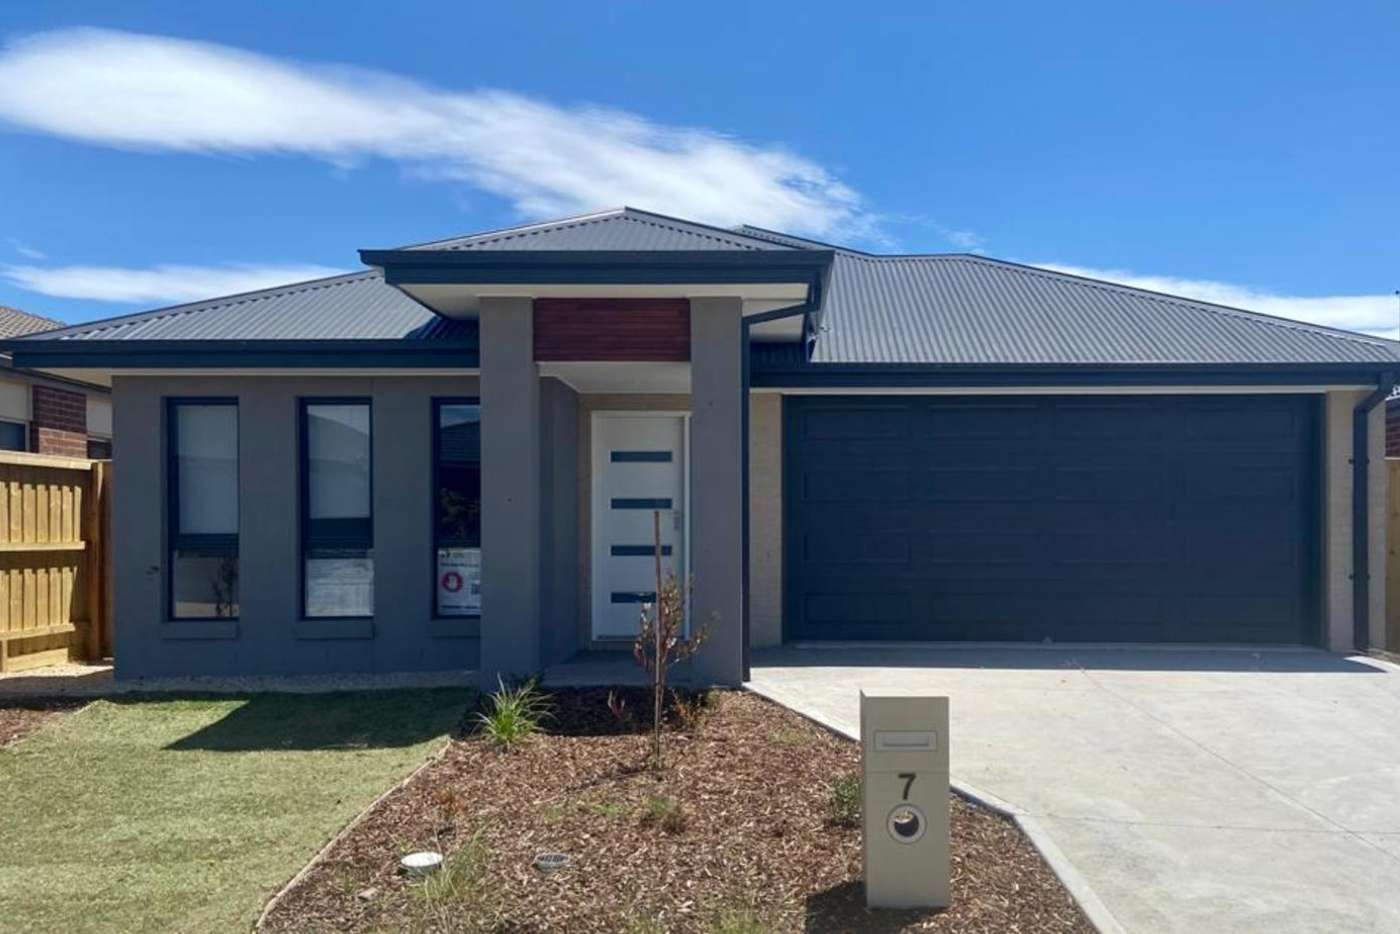 Main view of Homely house listing, 7 Dajarra Avenue, Wyndham Vale VIC 3024